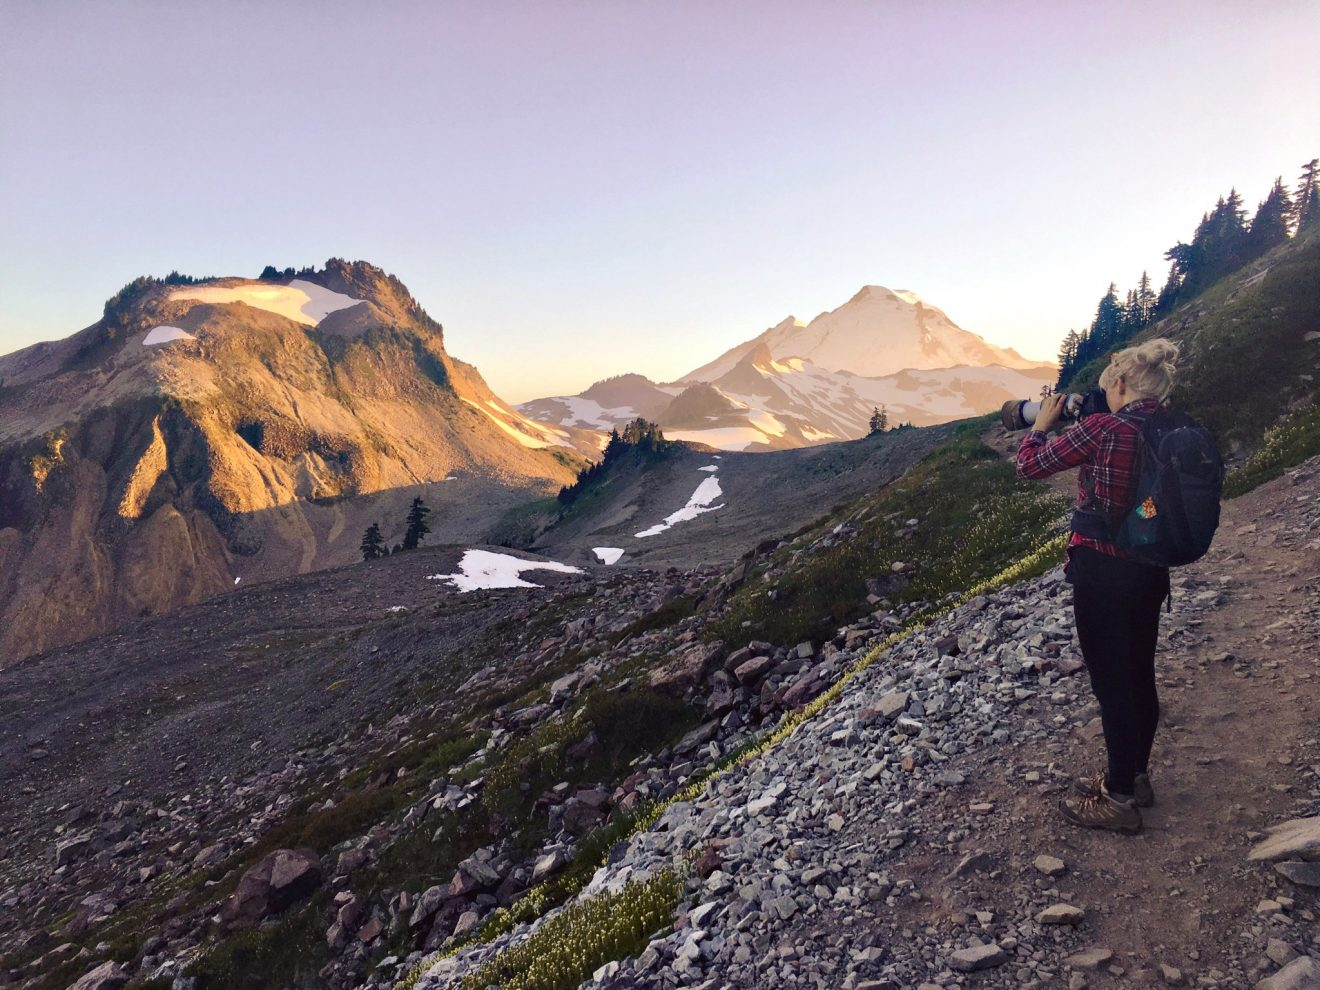 Chain Lakes Loop and Ptarmigan Trail near Mount Baker in Washington